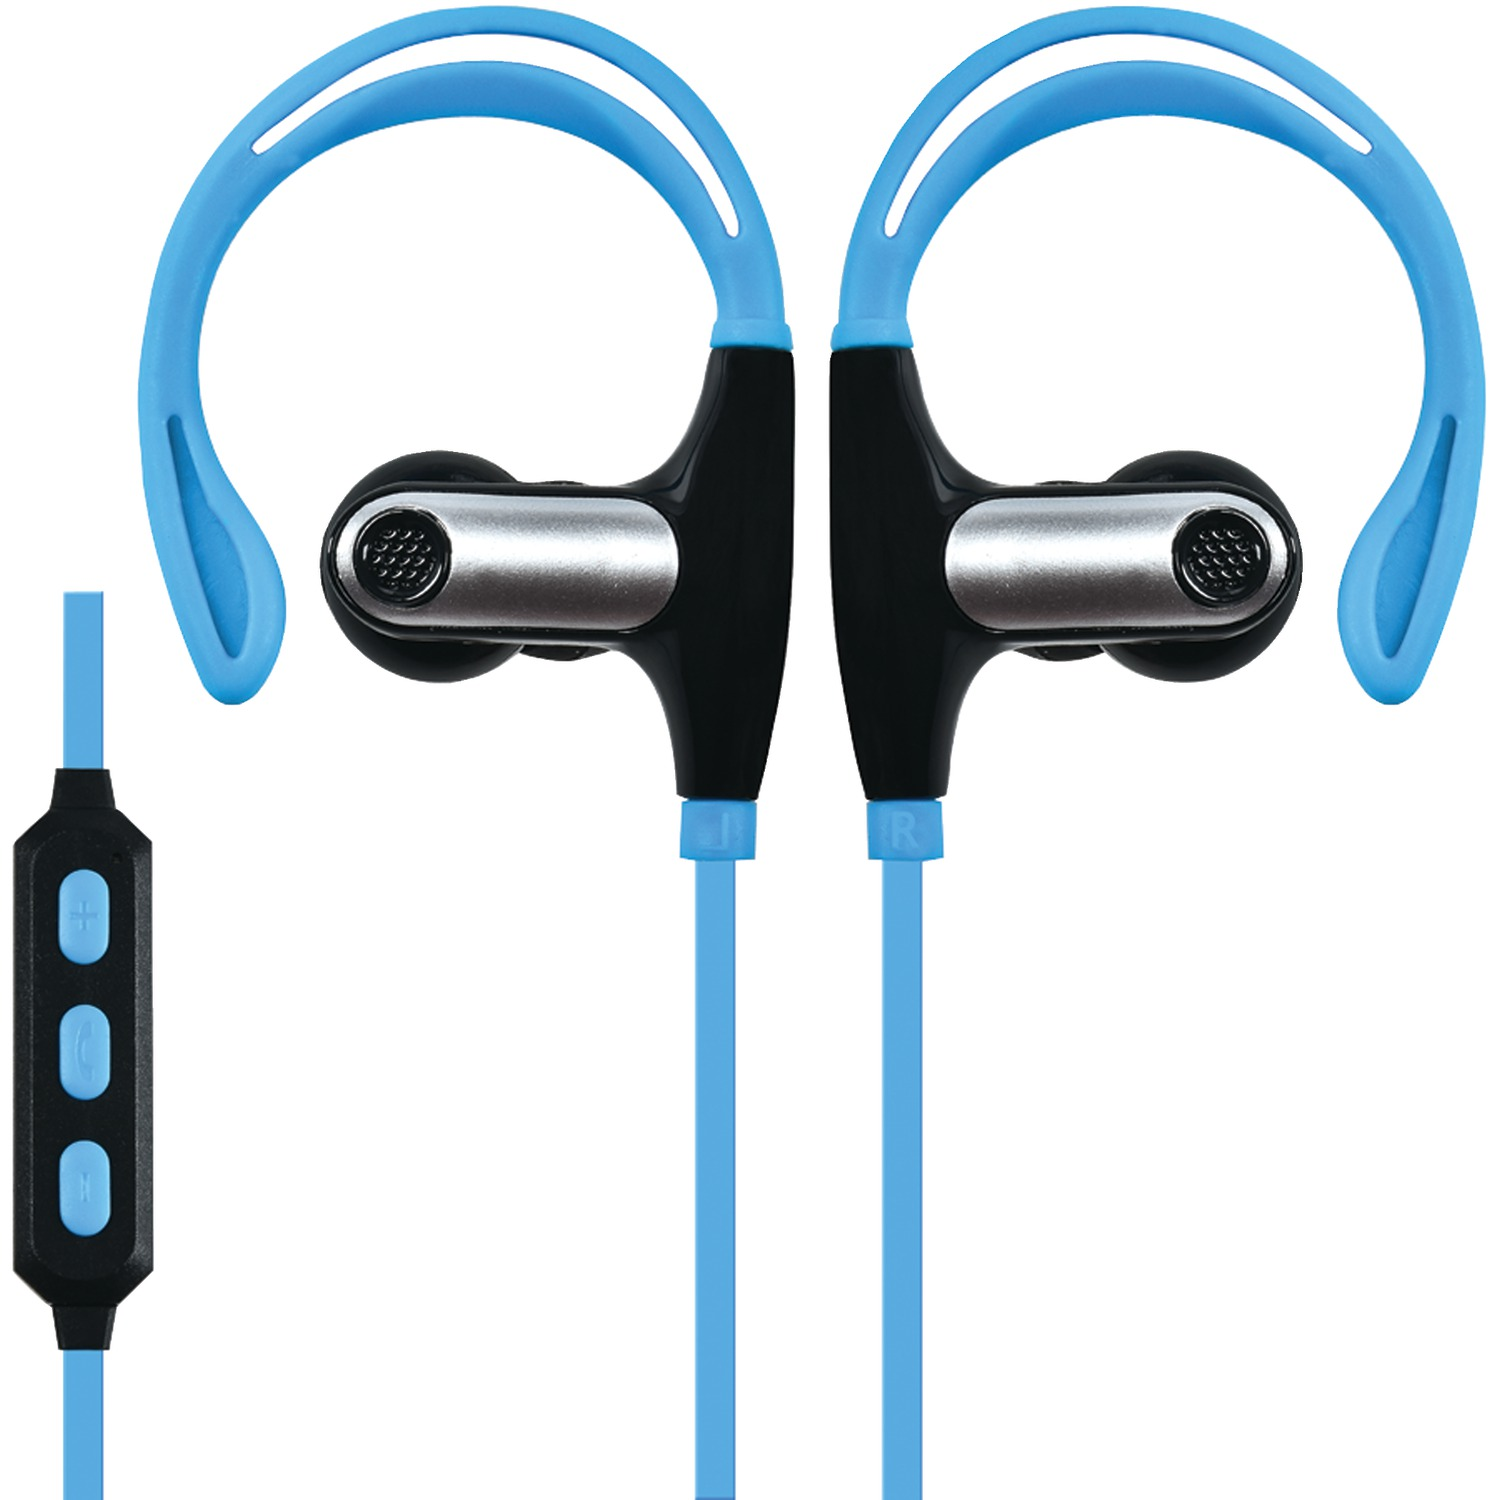 supersonic iq 131bt blue sweatproof bluetooth r sport earbuds with microphone blue. Black Bedroom Furniture Sets. Home Design Ideas